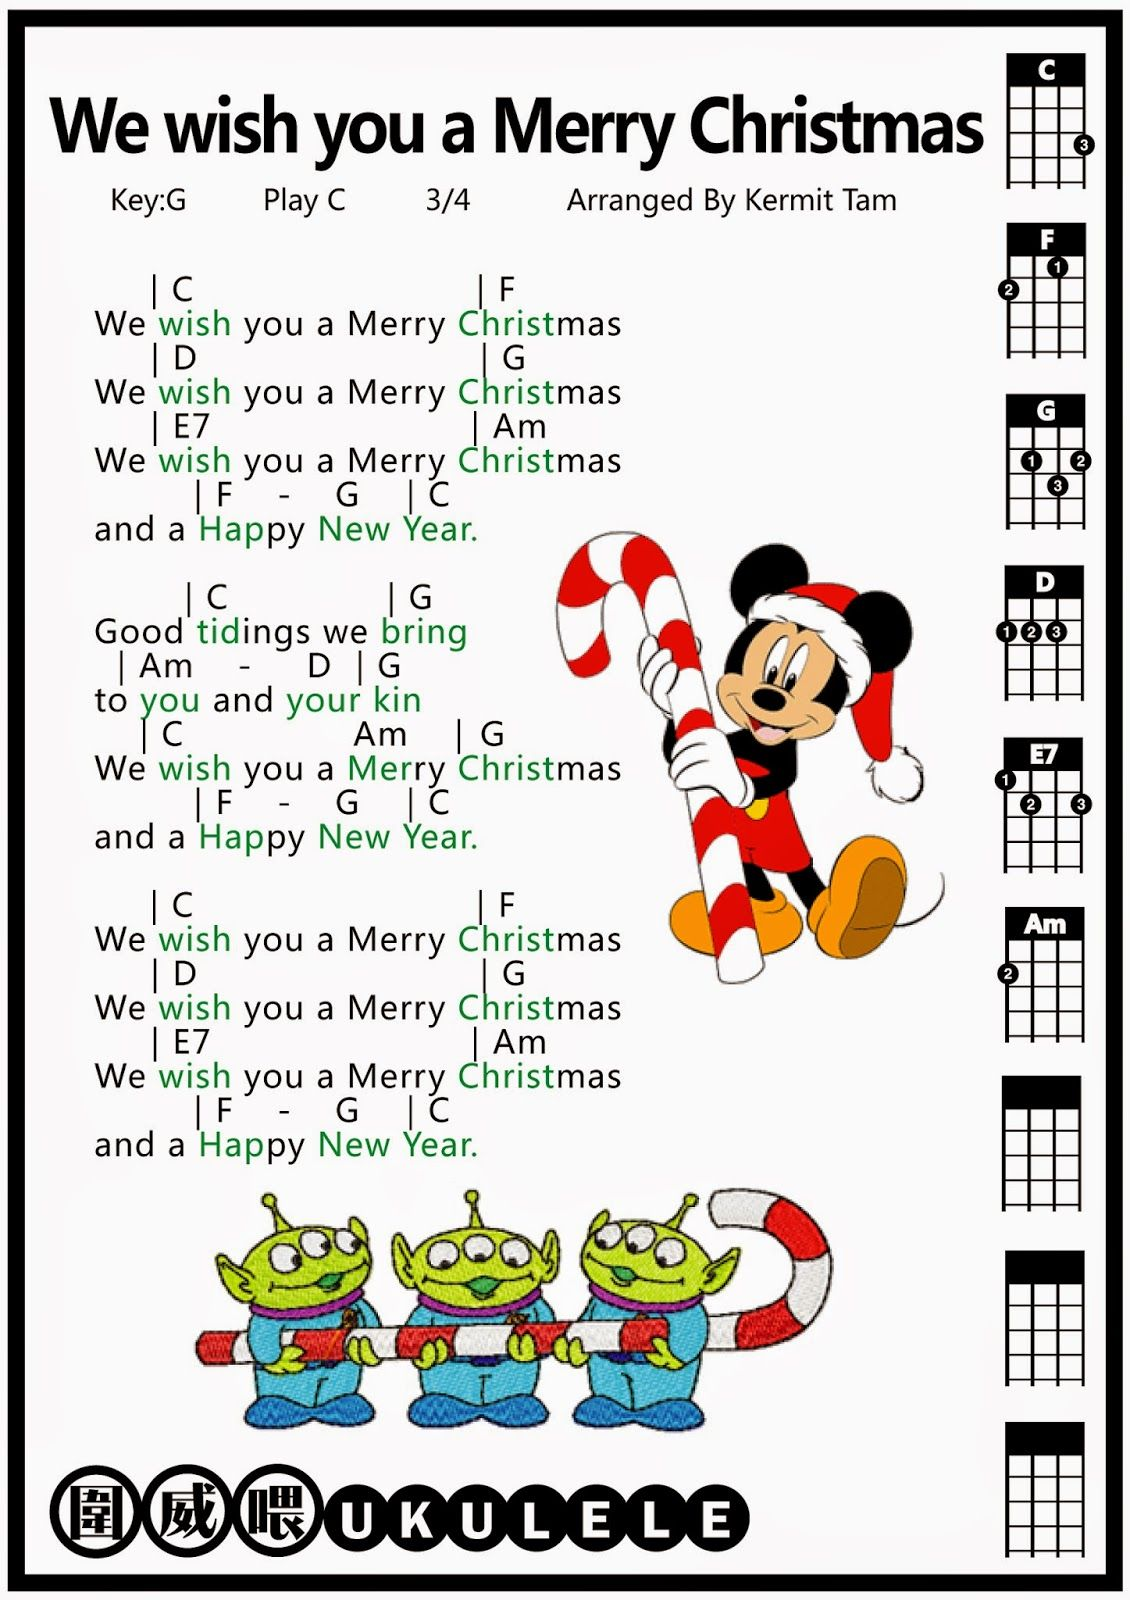 ukulele we wish you a merry christmas ukulele tab ukulele we wish you a merry christmas ukulele tab hexwebz Images